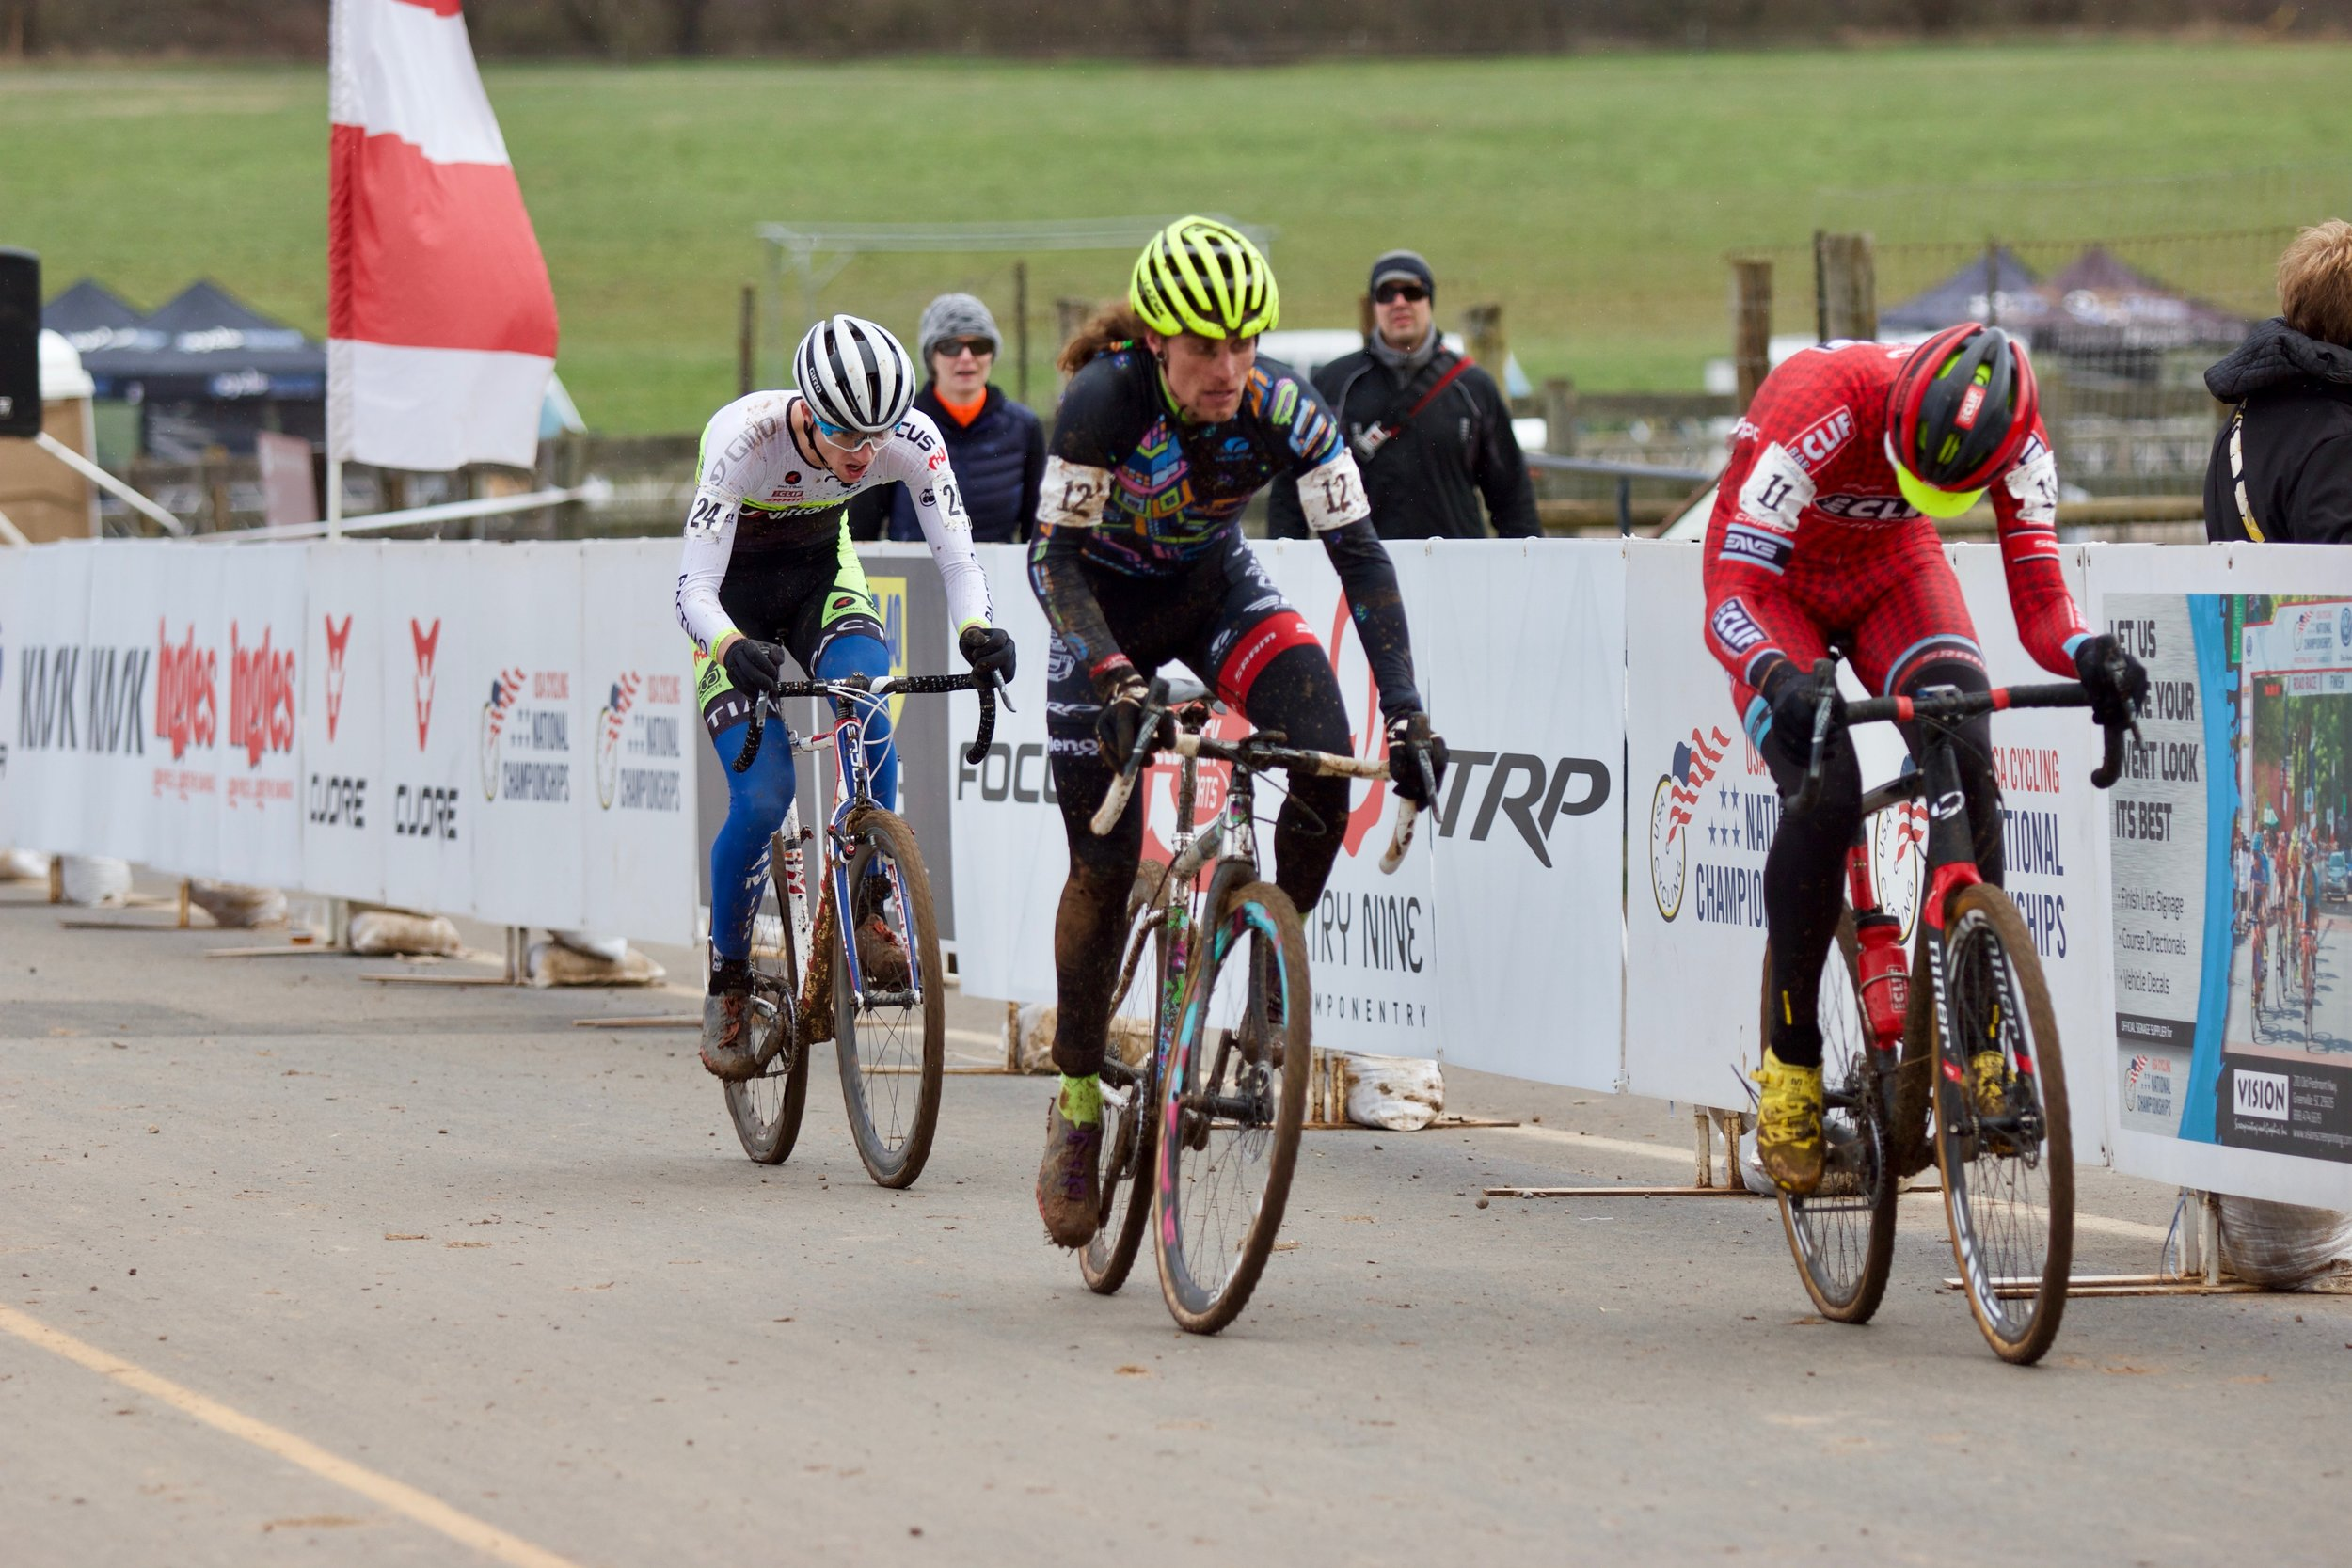 Jack Kisseberth on his last lap behind JAM Fund alum Anthony Clark (Squid Bikes)at the 2016 Cyclocross National Championships in Asheville, North Carolina.Kisseberth finished just outside of the top ten. Photo by Vicky Sama.